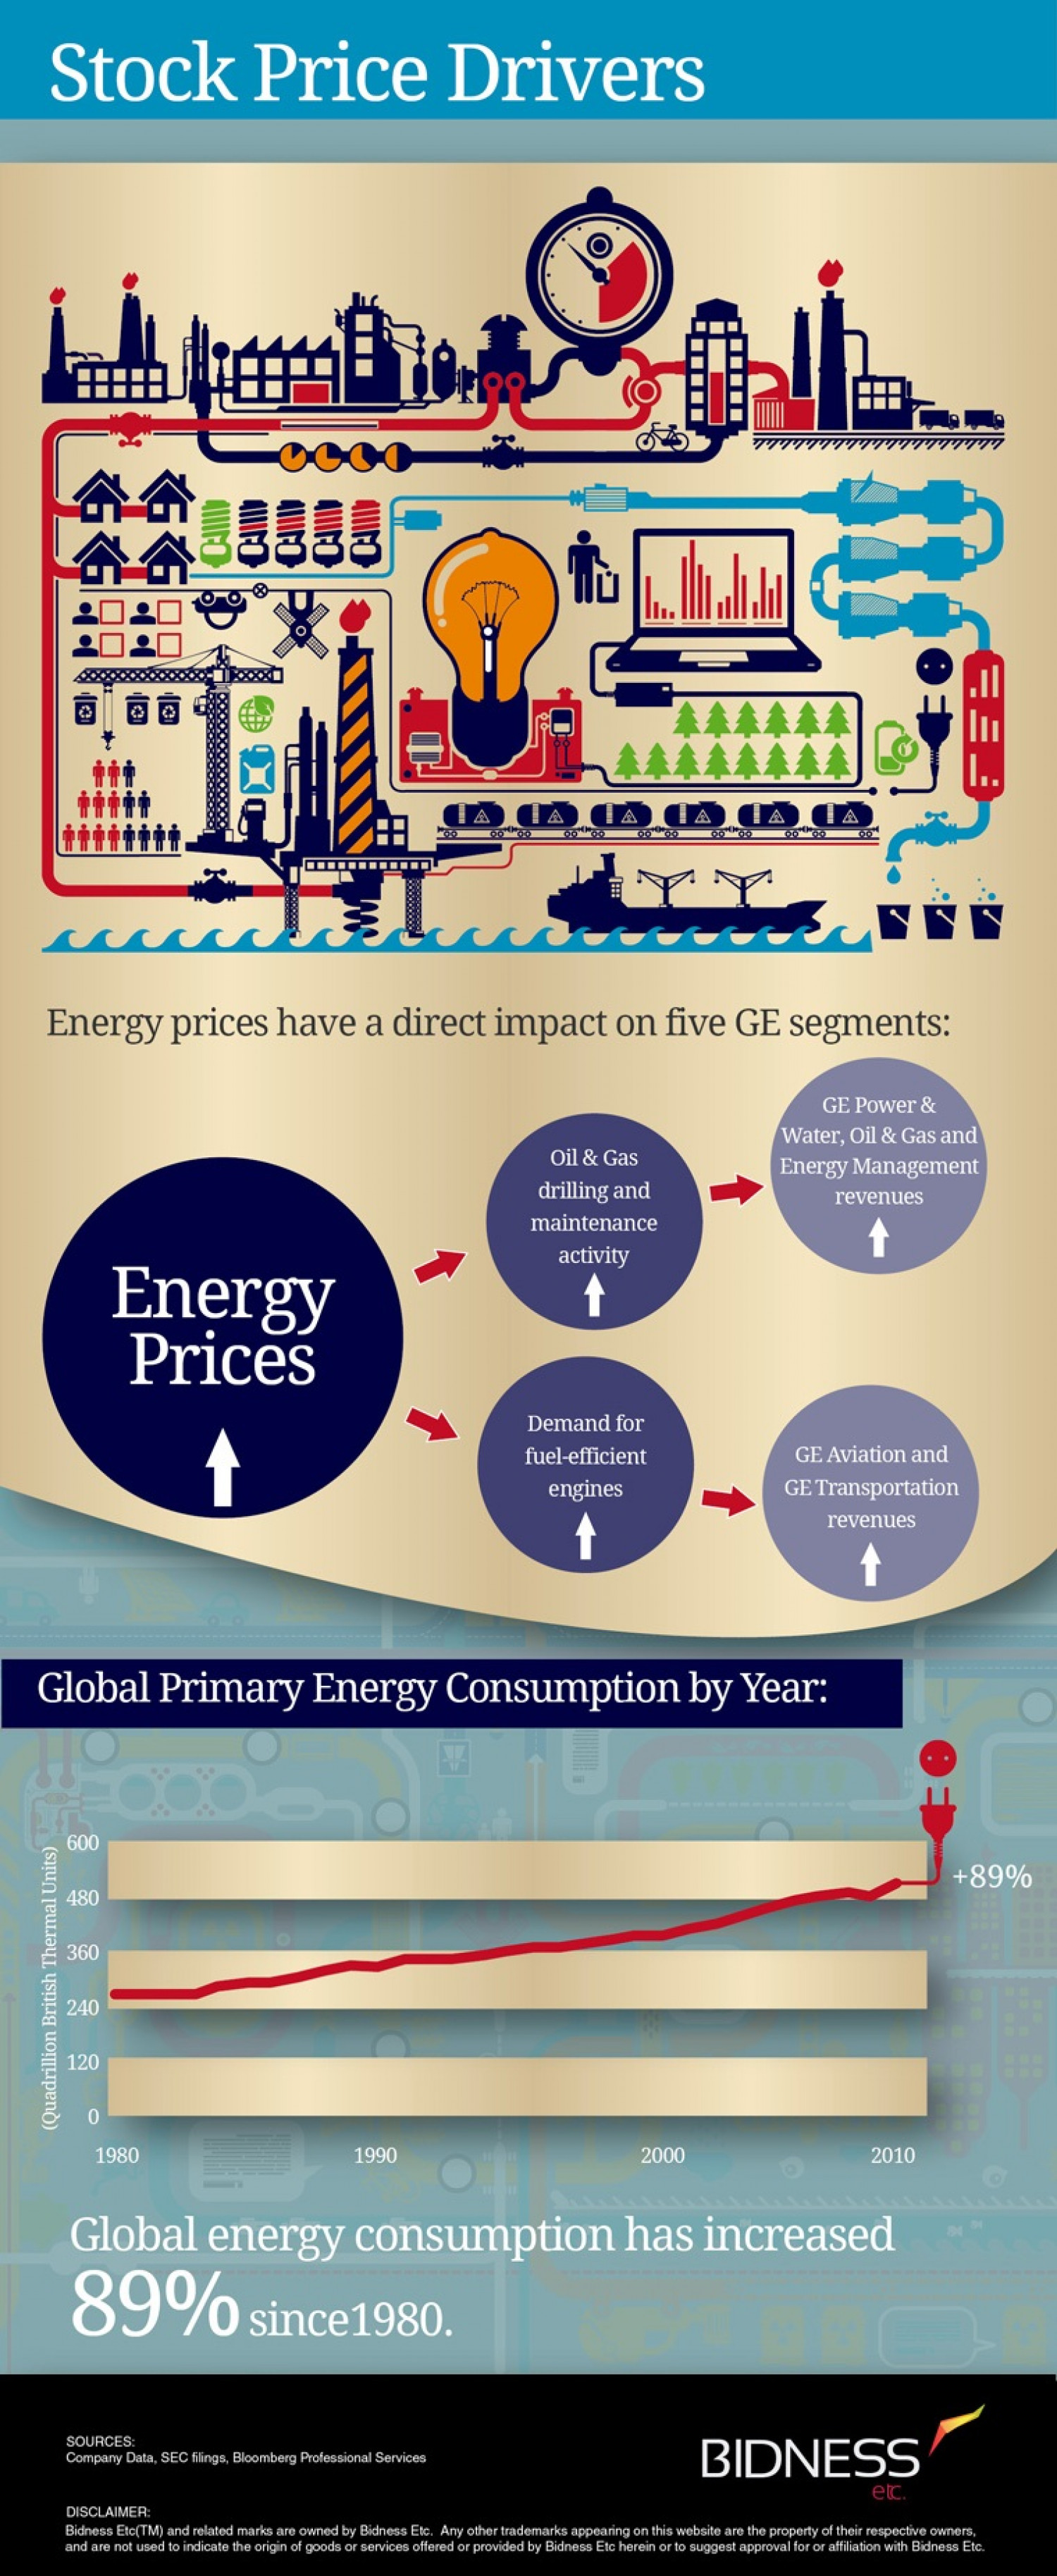 General Electric (GE) Stock Price Drivers Infographic